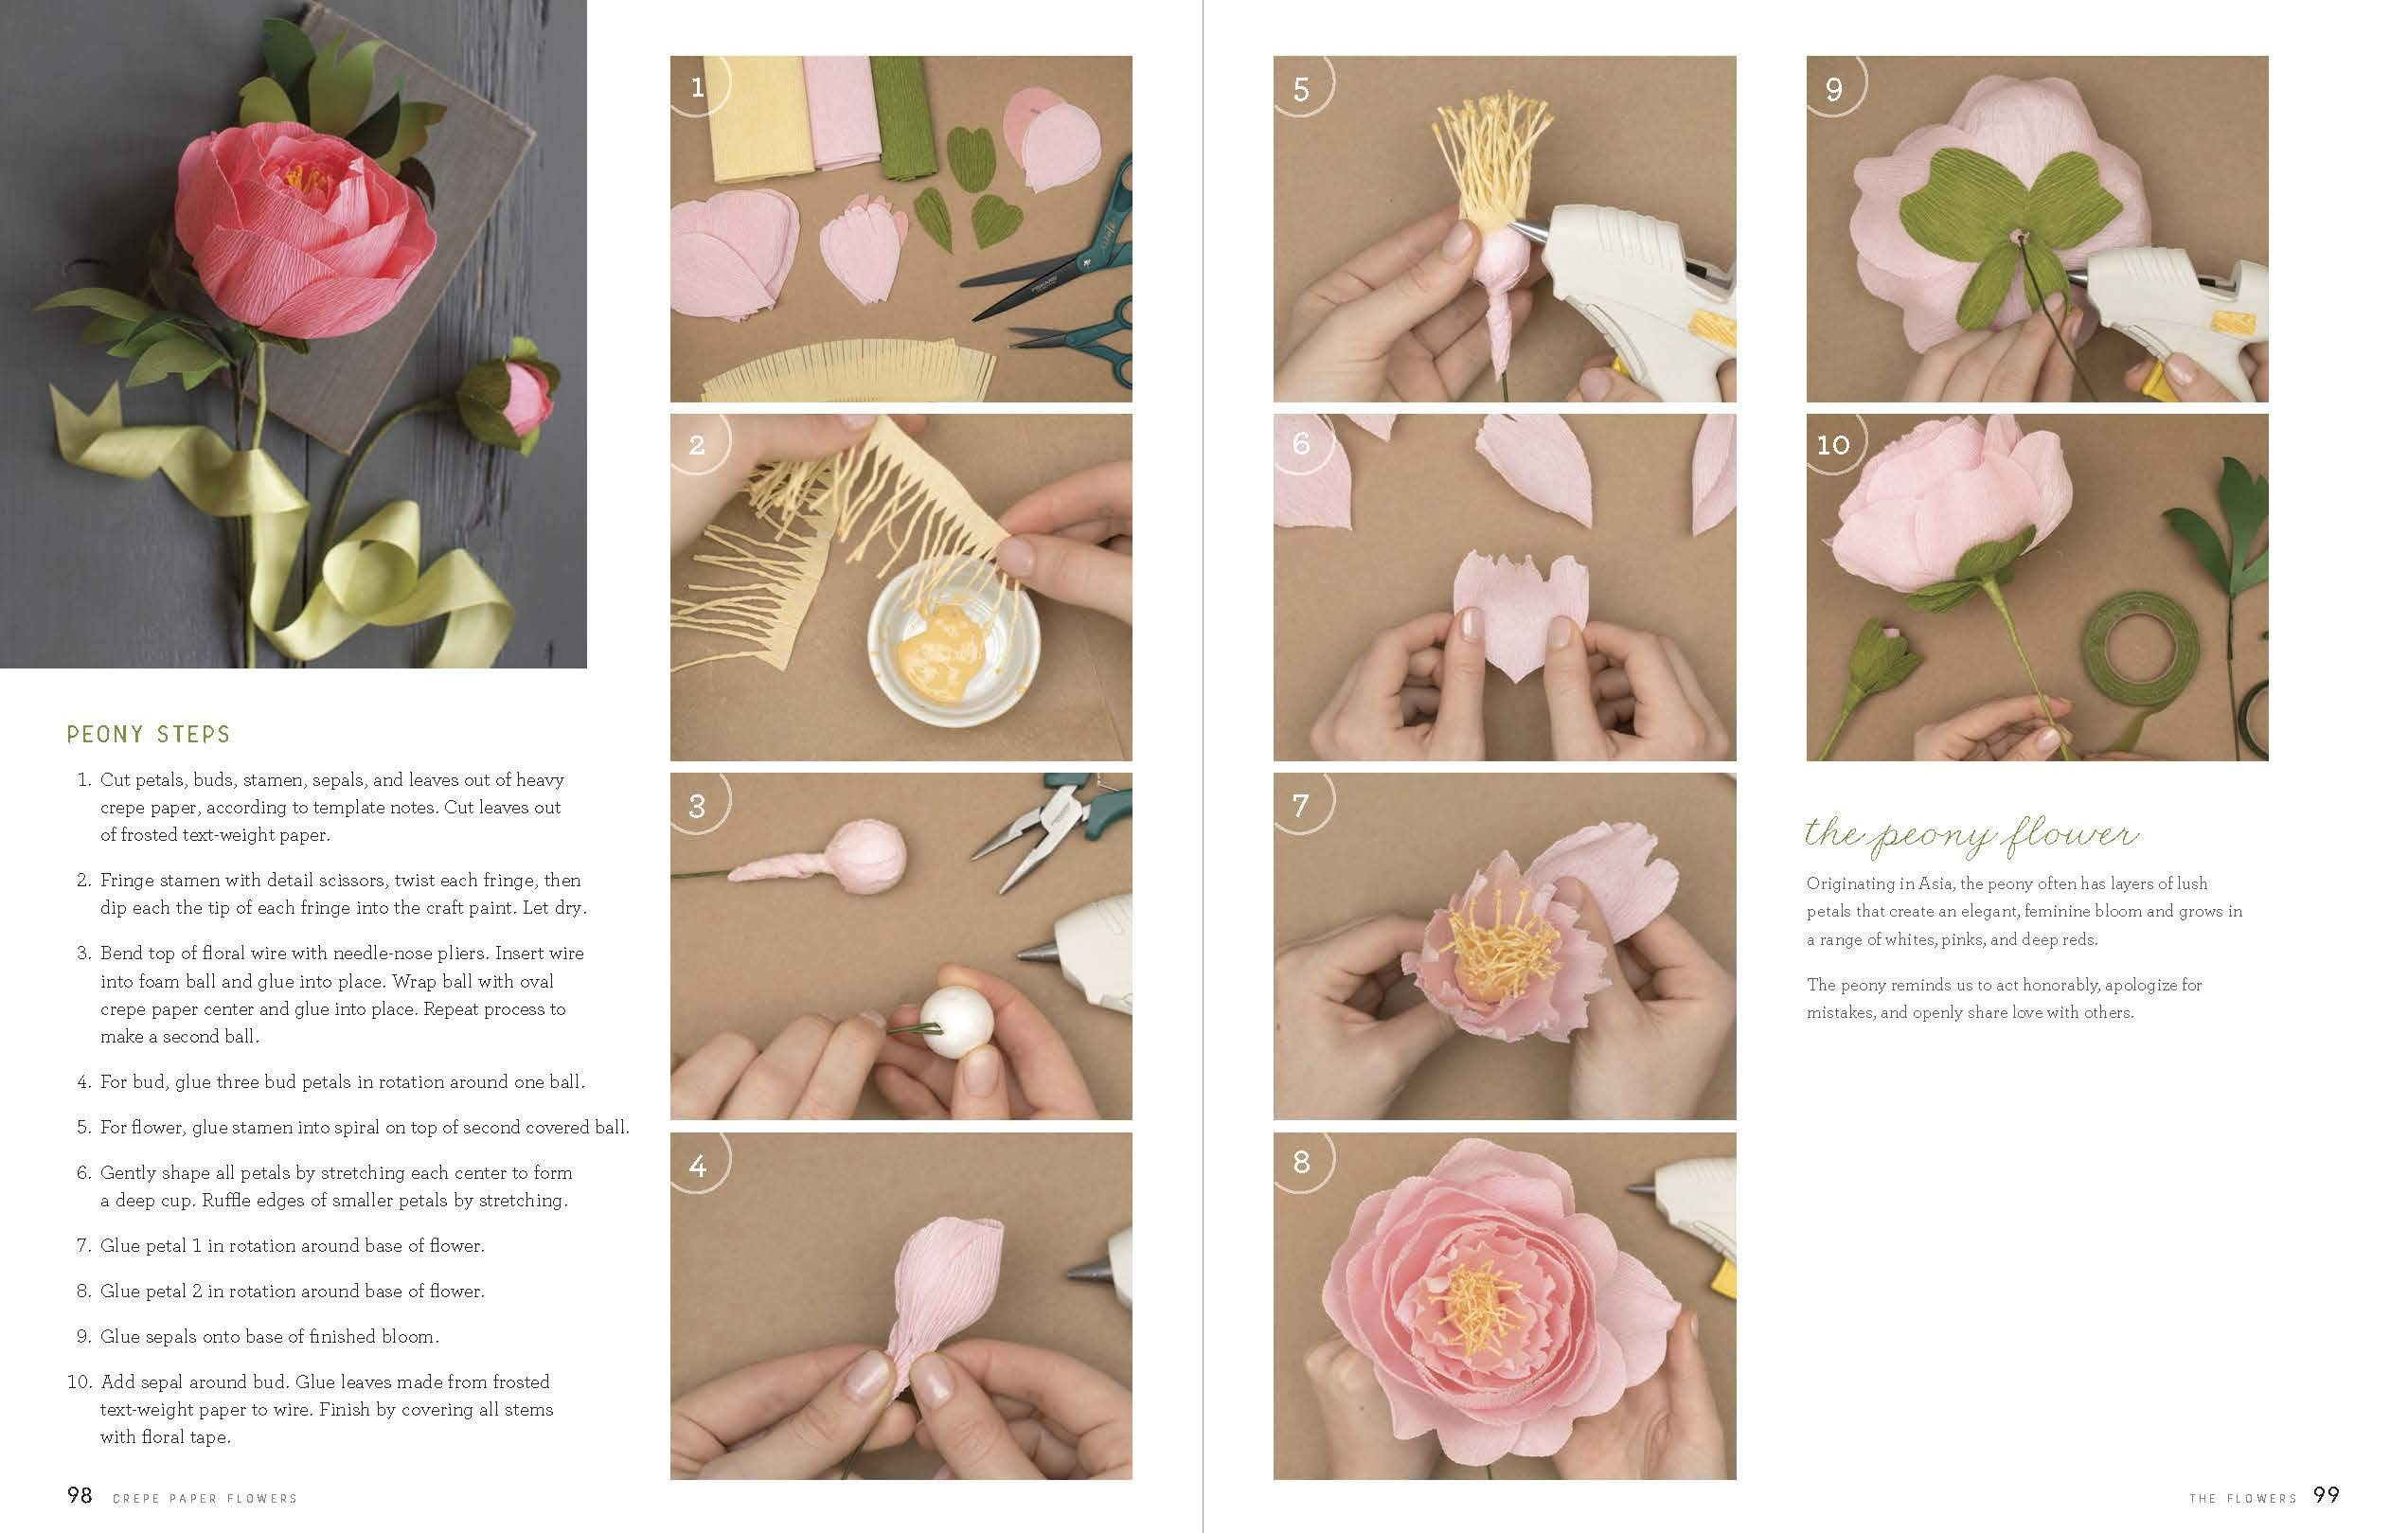 Crepe Paper Flowers The Beginners Guide To Making And Arranging